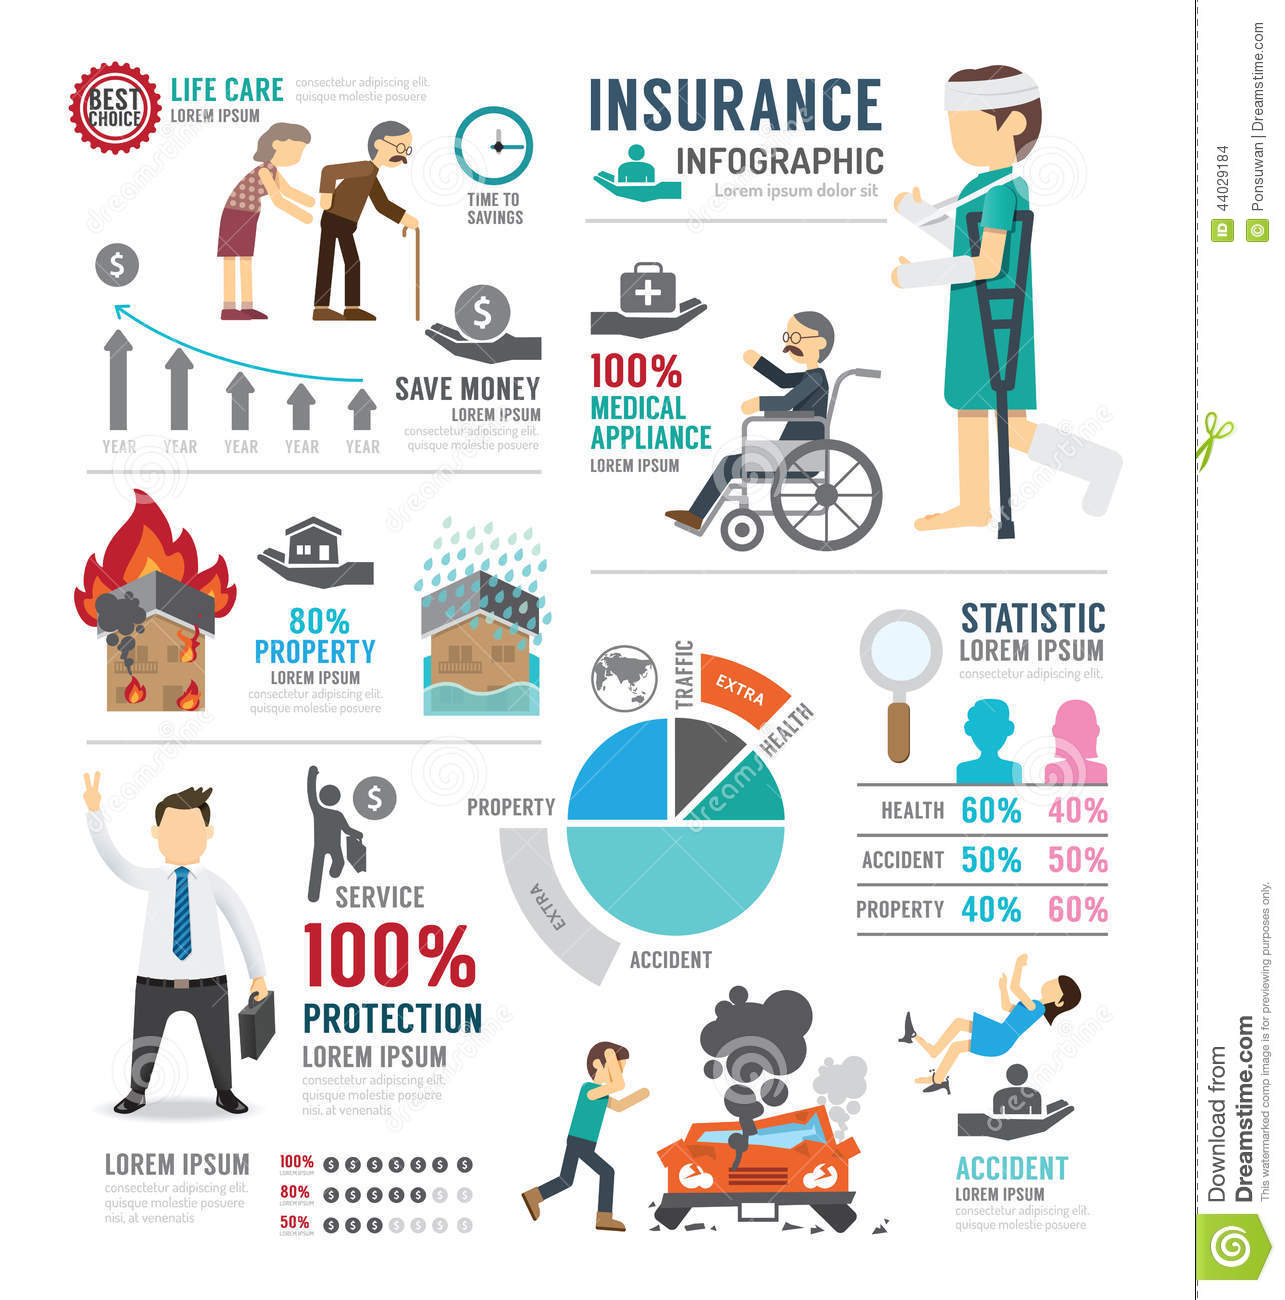 work life balance in indian hotel industry Work-related stress has become an important issue within the hospitality  literature  control, work relationships, job insecurity, work-life balance,  resources and  on middle management's performance in the hospitality  industry in india.